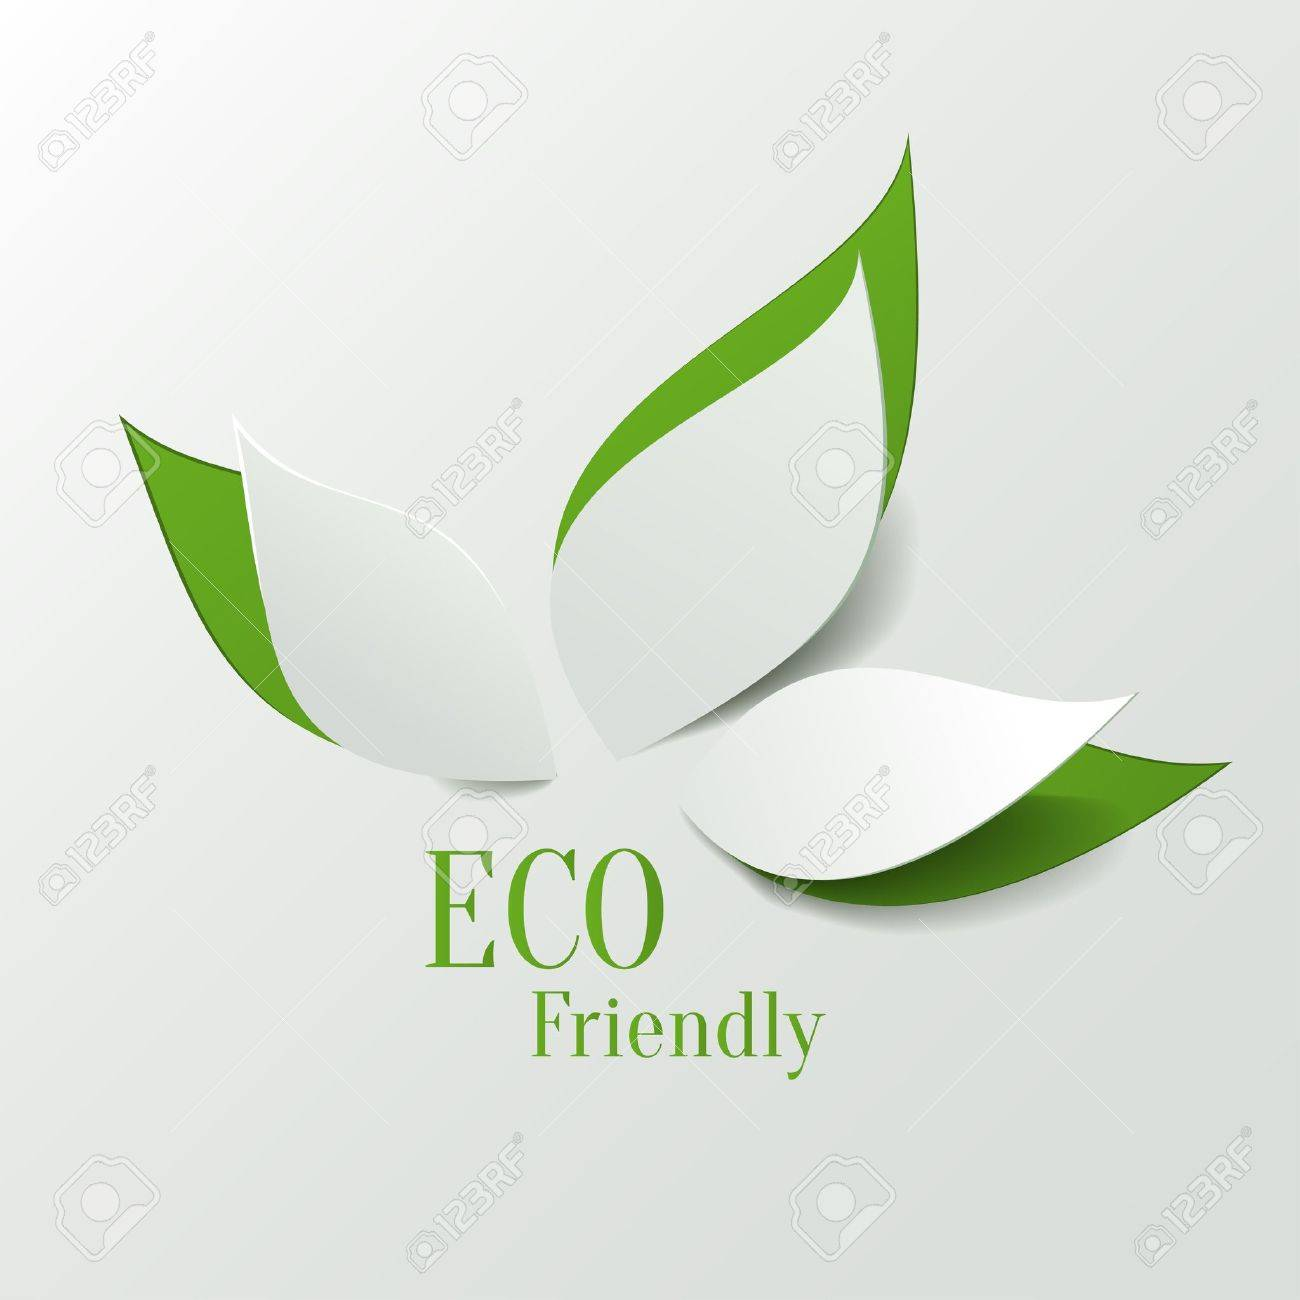 Green eco friendly background - abstract paper leaves Stock Vector - 19146192